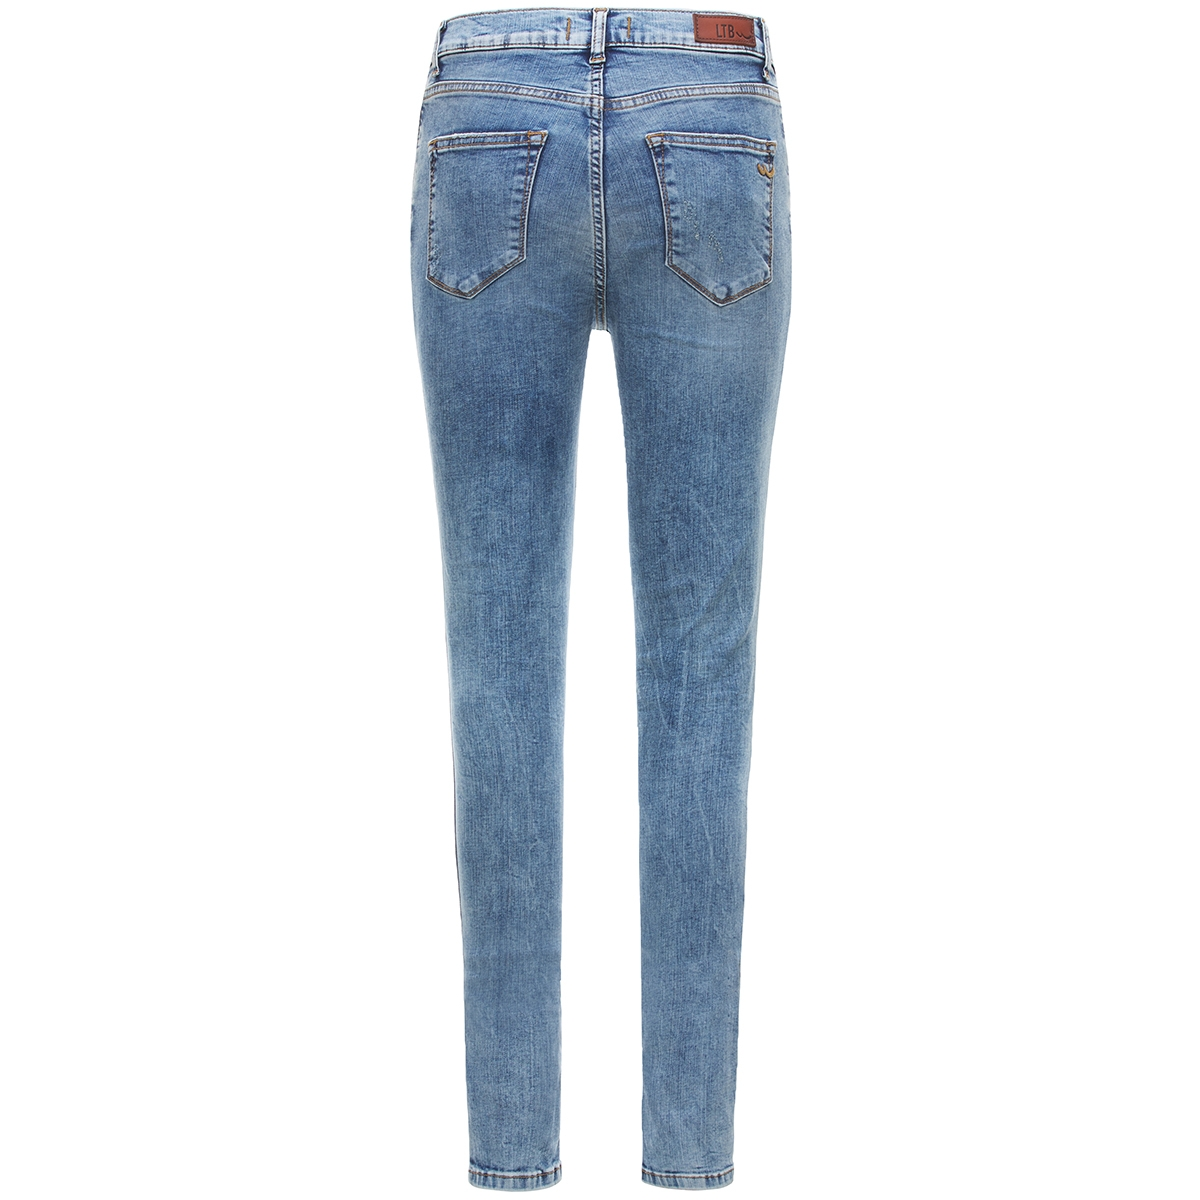 amy51316 14582 ltb jeans 52150 caitlin wash